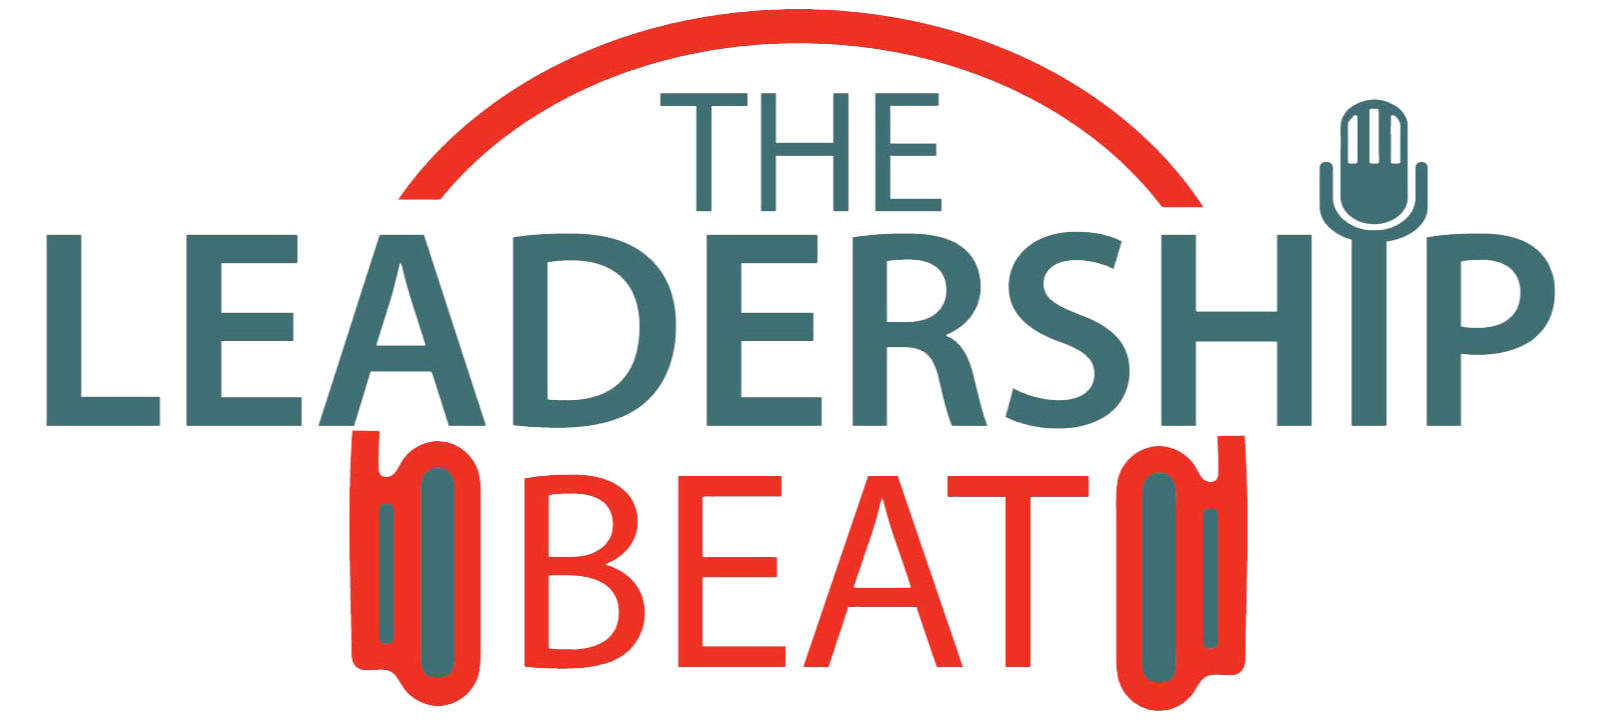 The Leadership Beat